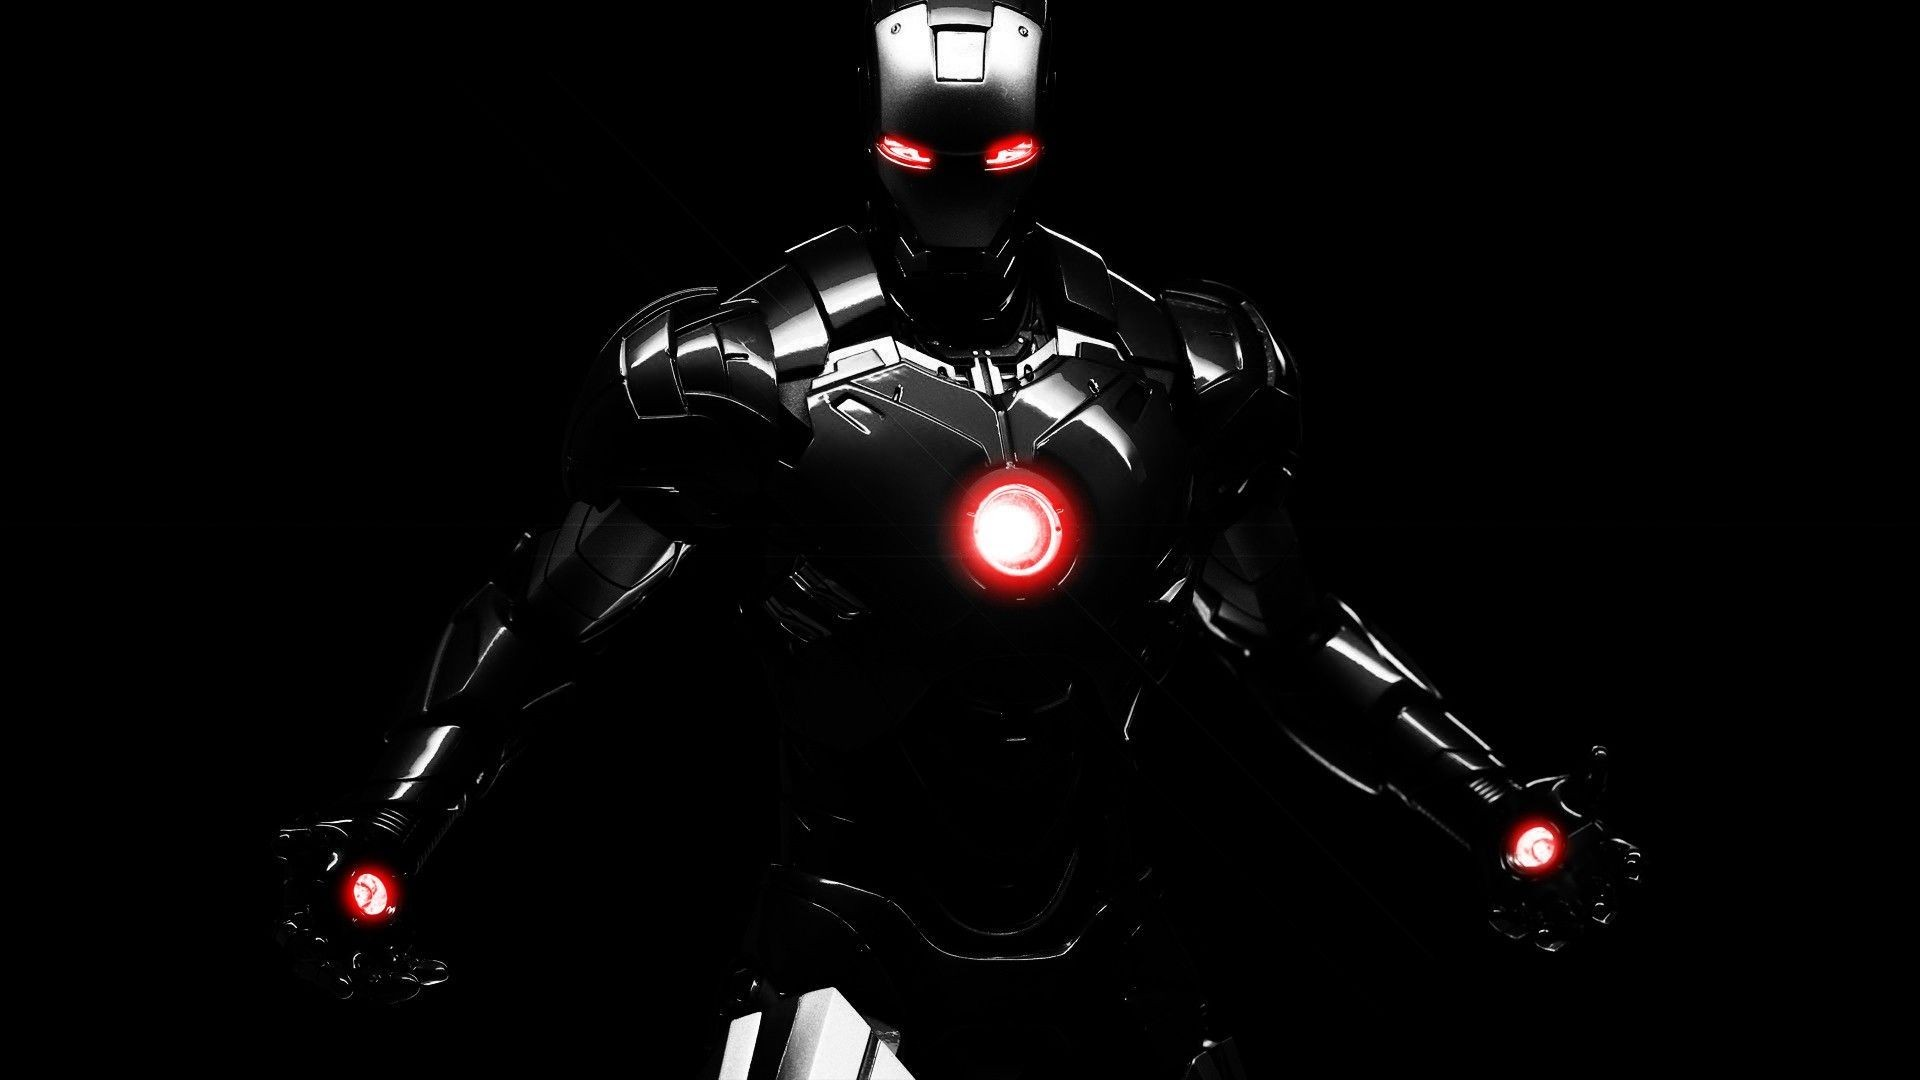 ironman wallpaper ·① download free full hd wallpapers for desktop